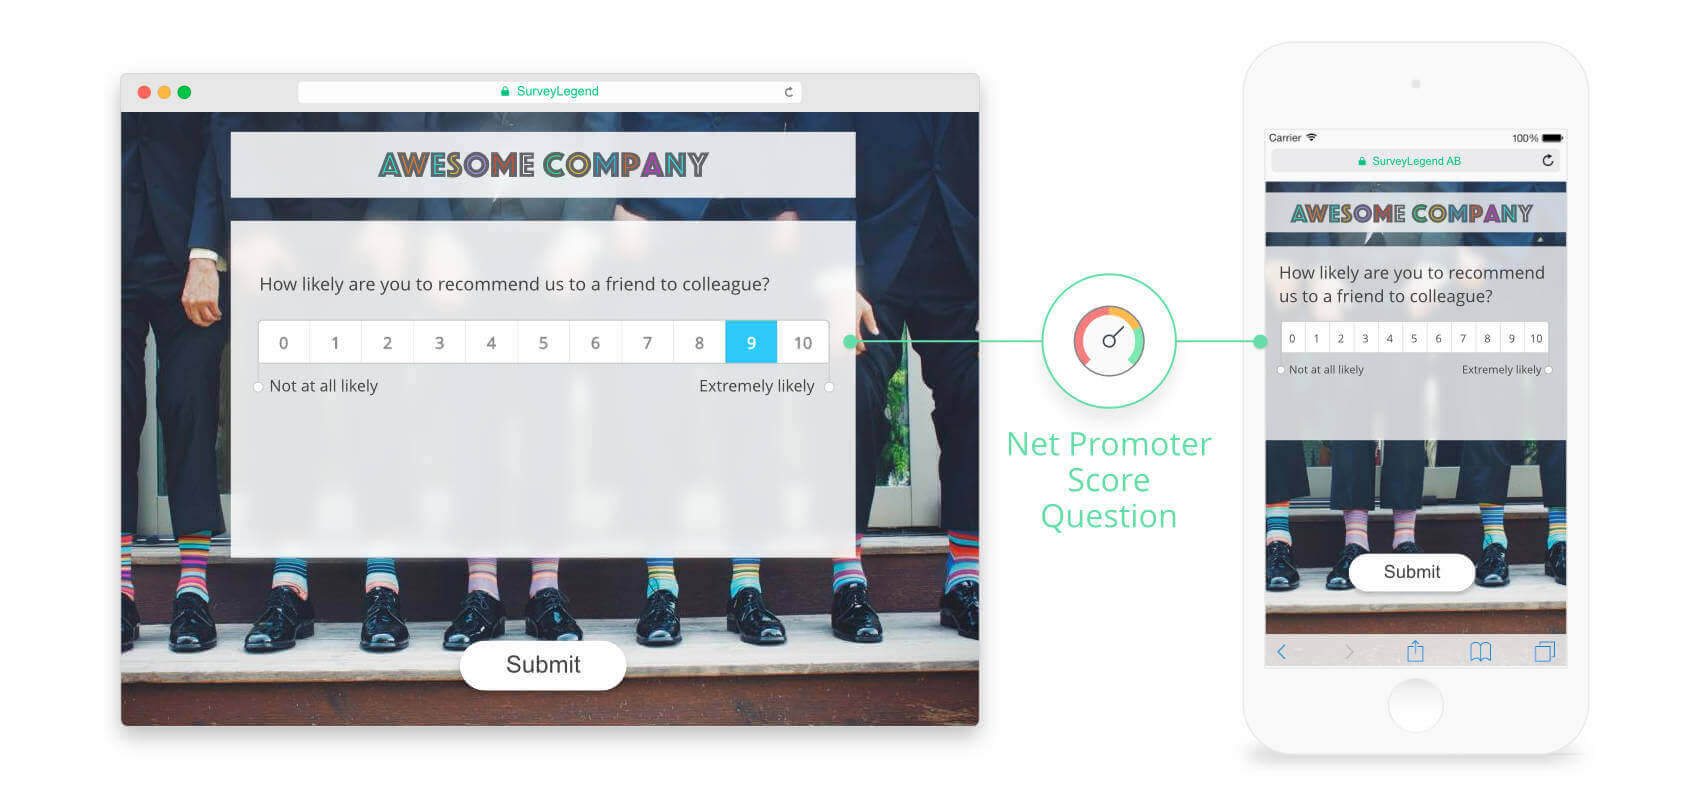 Our Net Promoter Score question is designed to work perfectly on mobile devices.